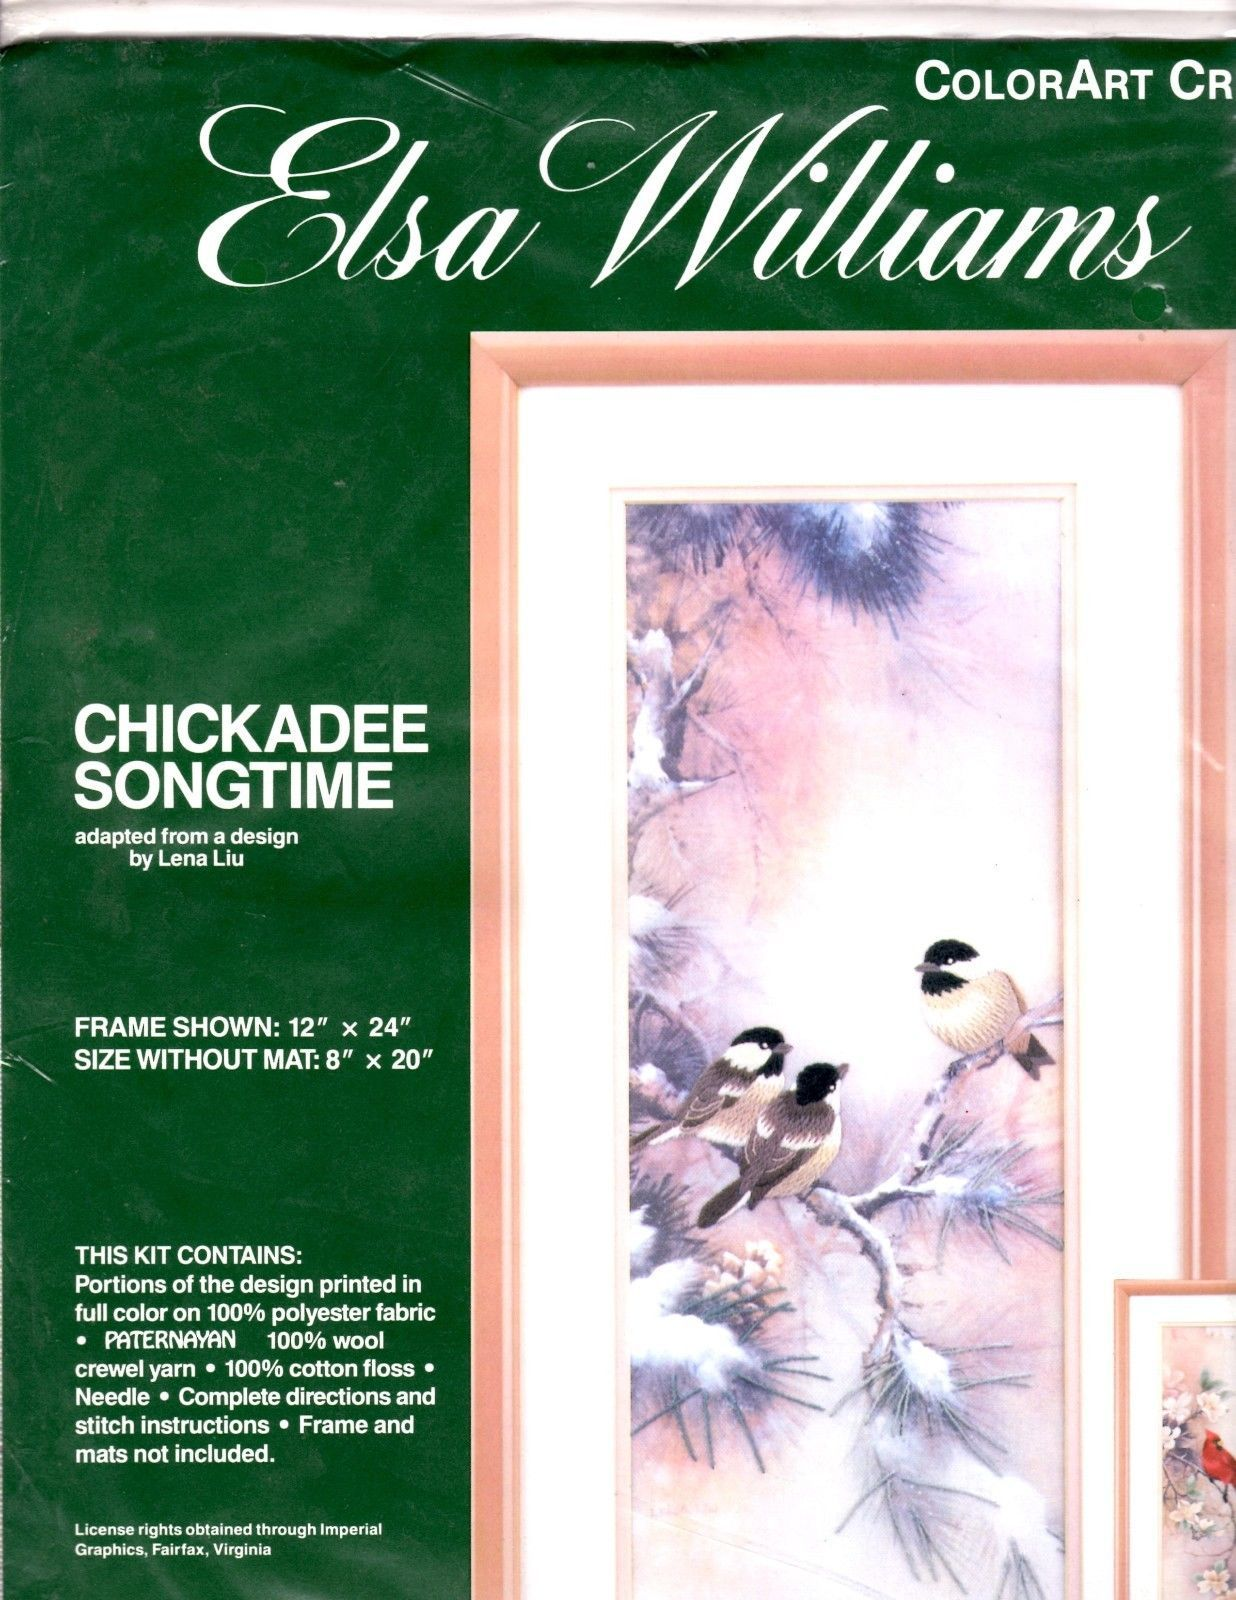 Elsa Williams ColorArt Crewel Chickadee Songtime Needlepoint Kit USA 8x20 - $49.01